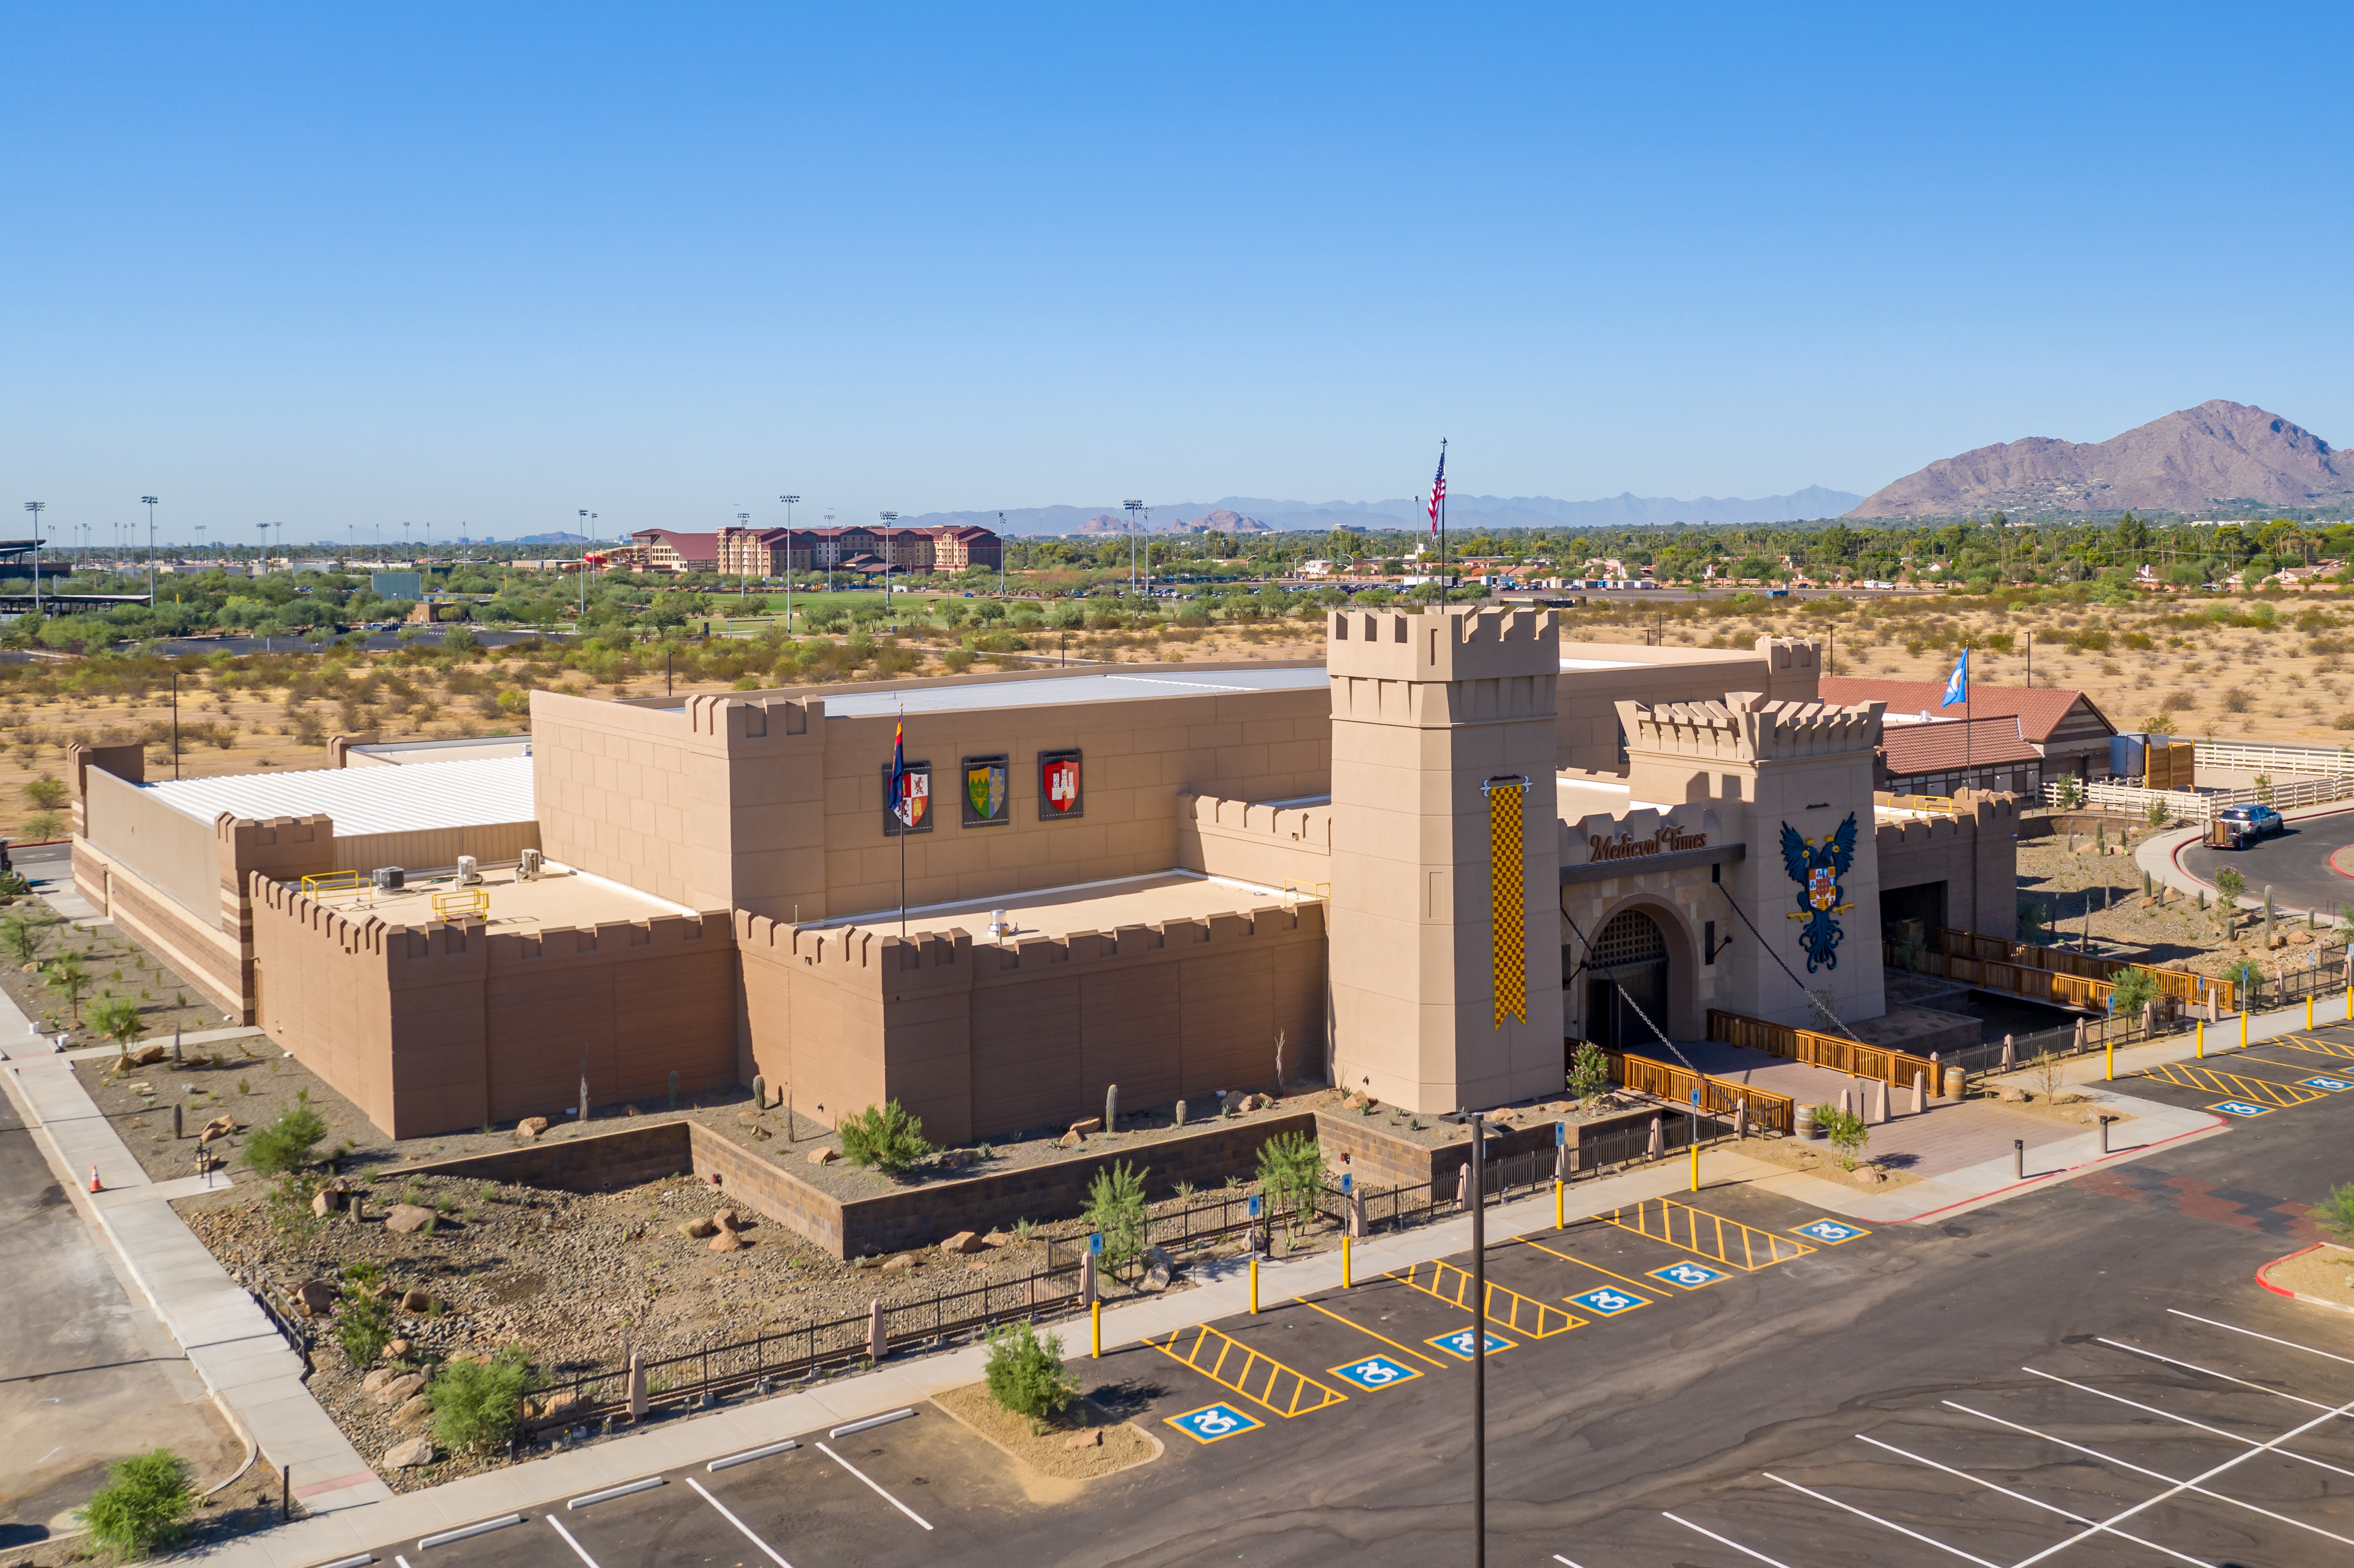 An 80,000-square-foot Medieval Times is the most recent addition to the Talking Stick Entertainment District in the Central Scottsdale submarket. In the distance is a view of the Great Wolf Lodge, hotel and indoor water park, which is nearing completion. (CoStar)